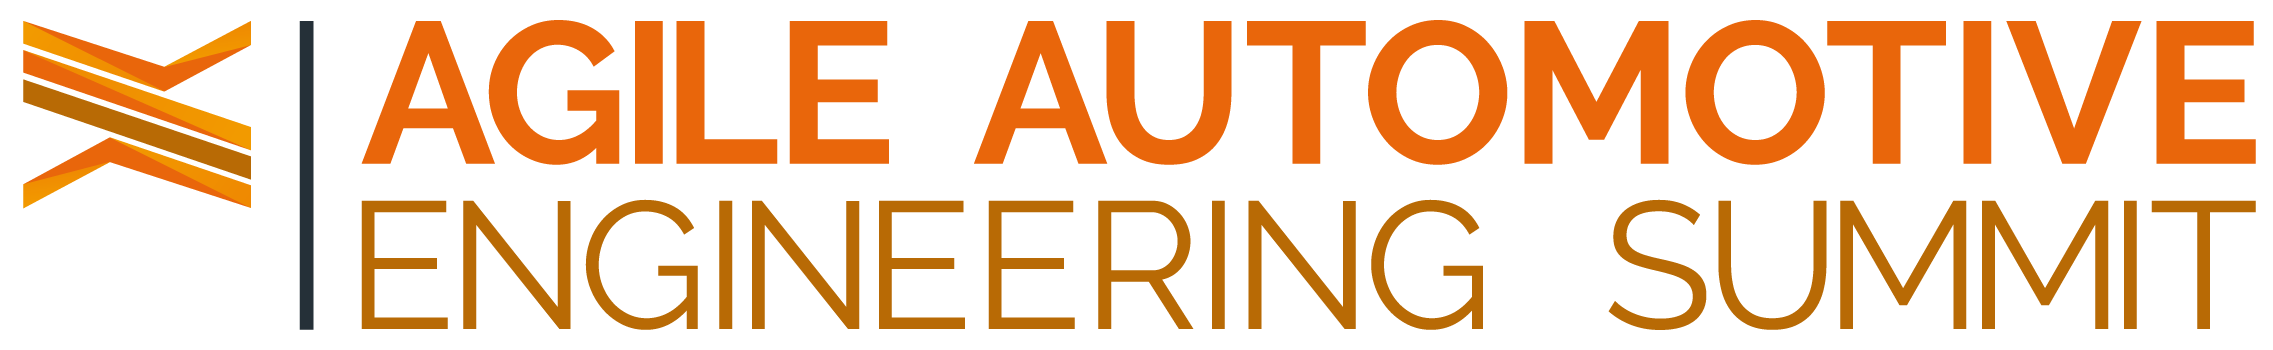 Agile Automotive Engineering Summit